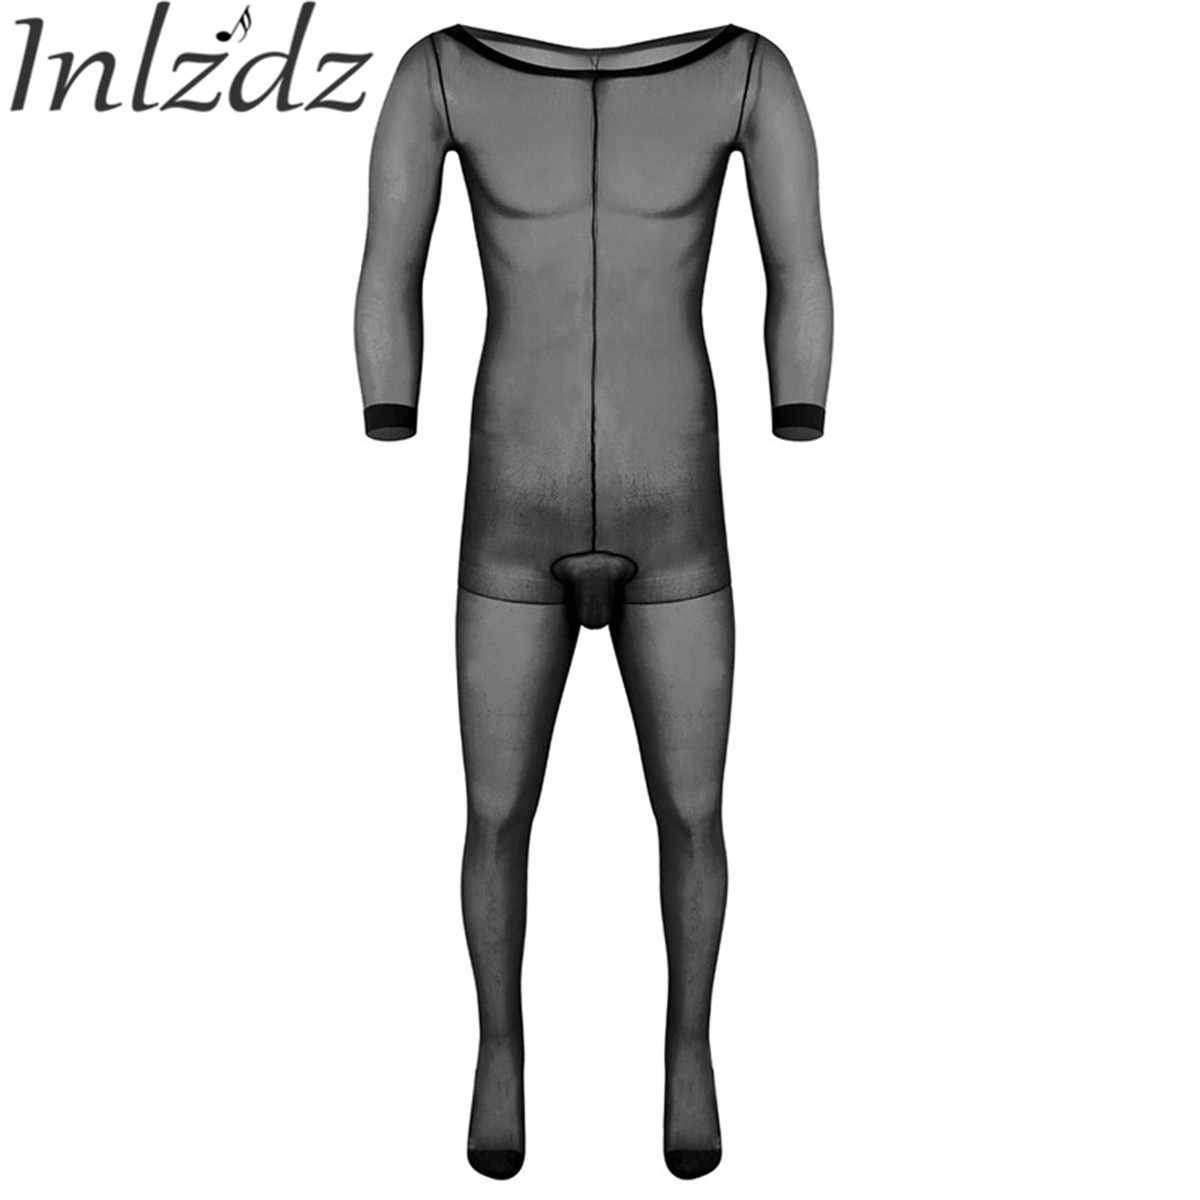 Pantyhose For Men Stockings Adult Skinny Long Sleeves Lingerie Ultra-thin Bodysuit for Male Underwear Pantyhose Bodystocking